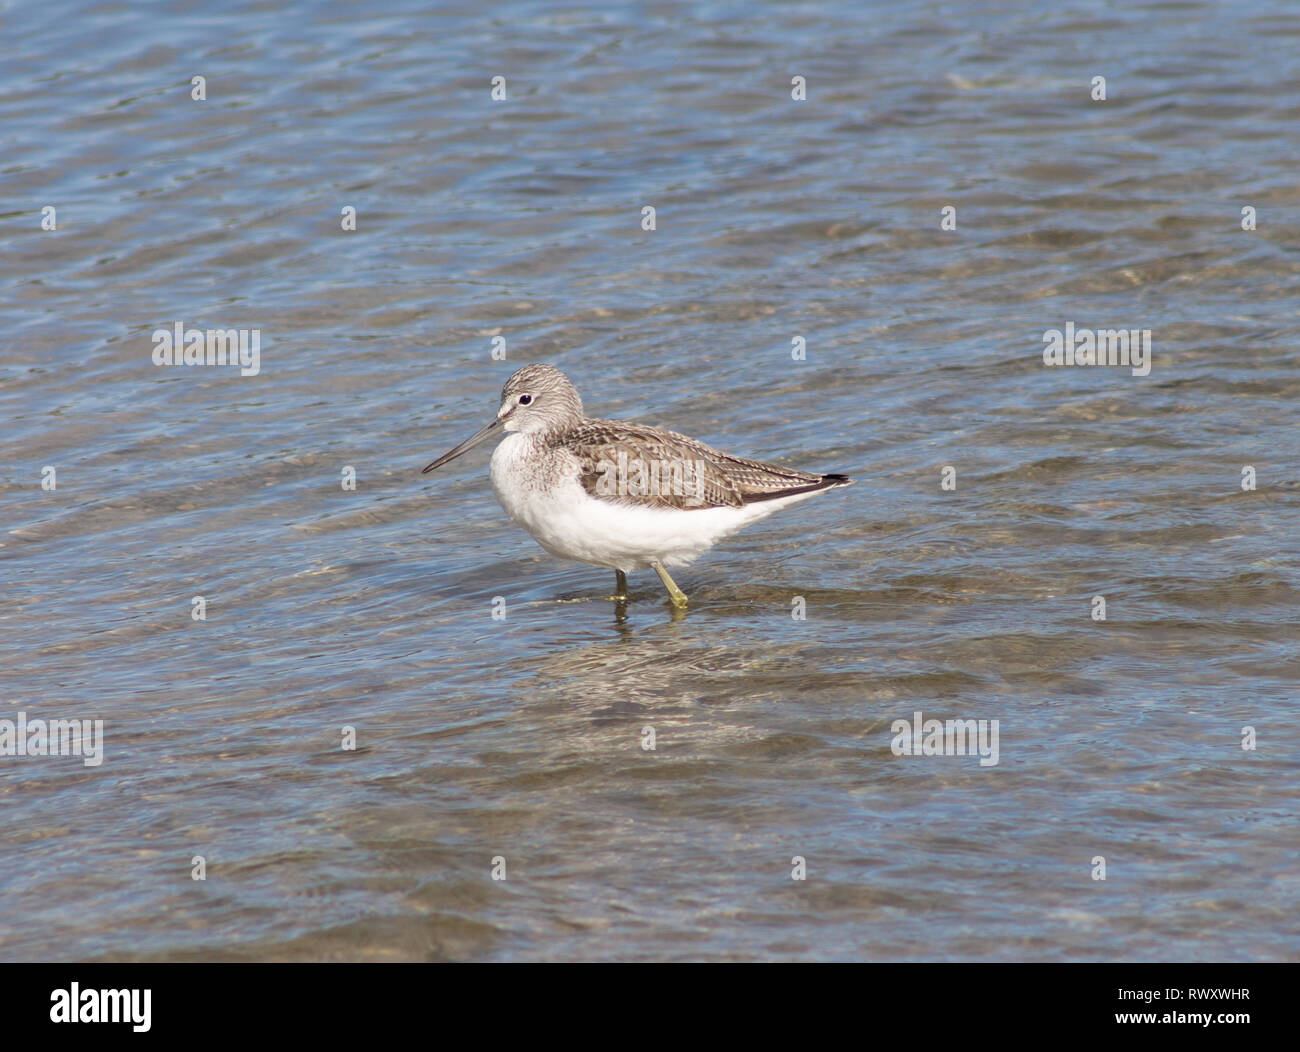 common-green-shank-tringa-nebularia-wading-in-shallow-water-RWXWHR.jpg